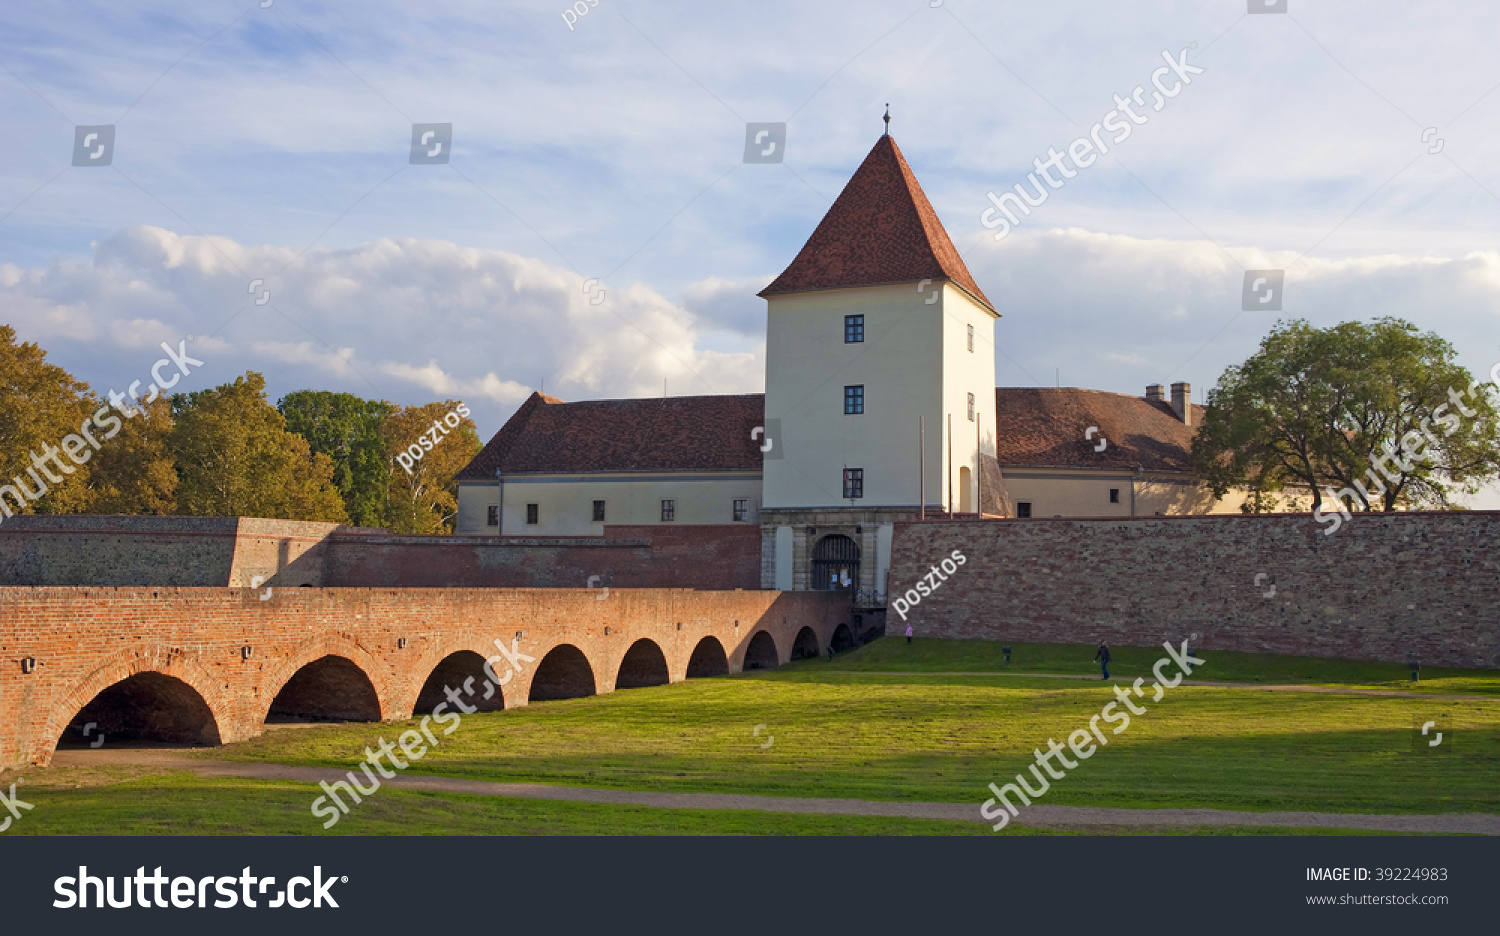 Sarvar Hungary  city pictures gallery : Sarvar Castle In Hungary Stock Photo 39224983 : Shutterstock